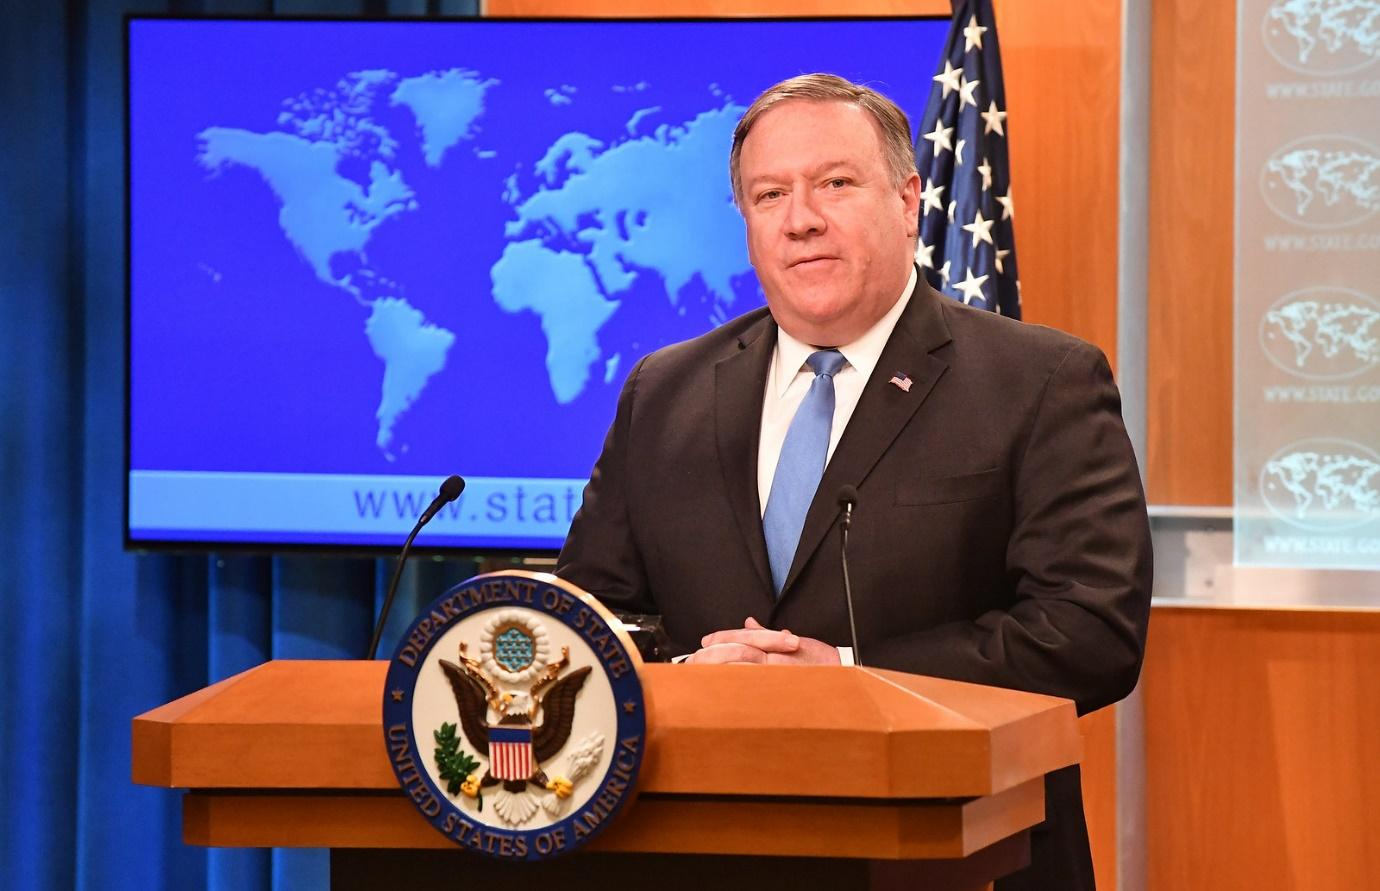 Speech of Secretary of State Michael R. Pompeo: The China Challenge   U.S.  Embassy in Paraguay